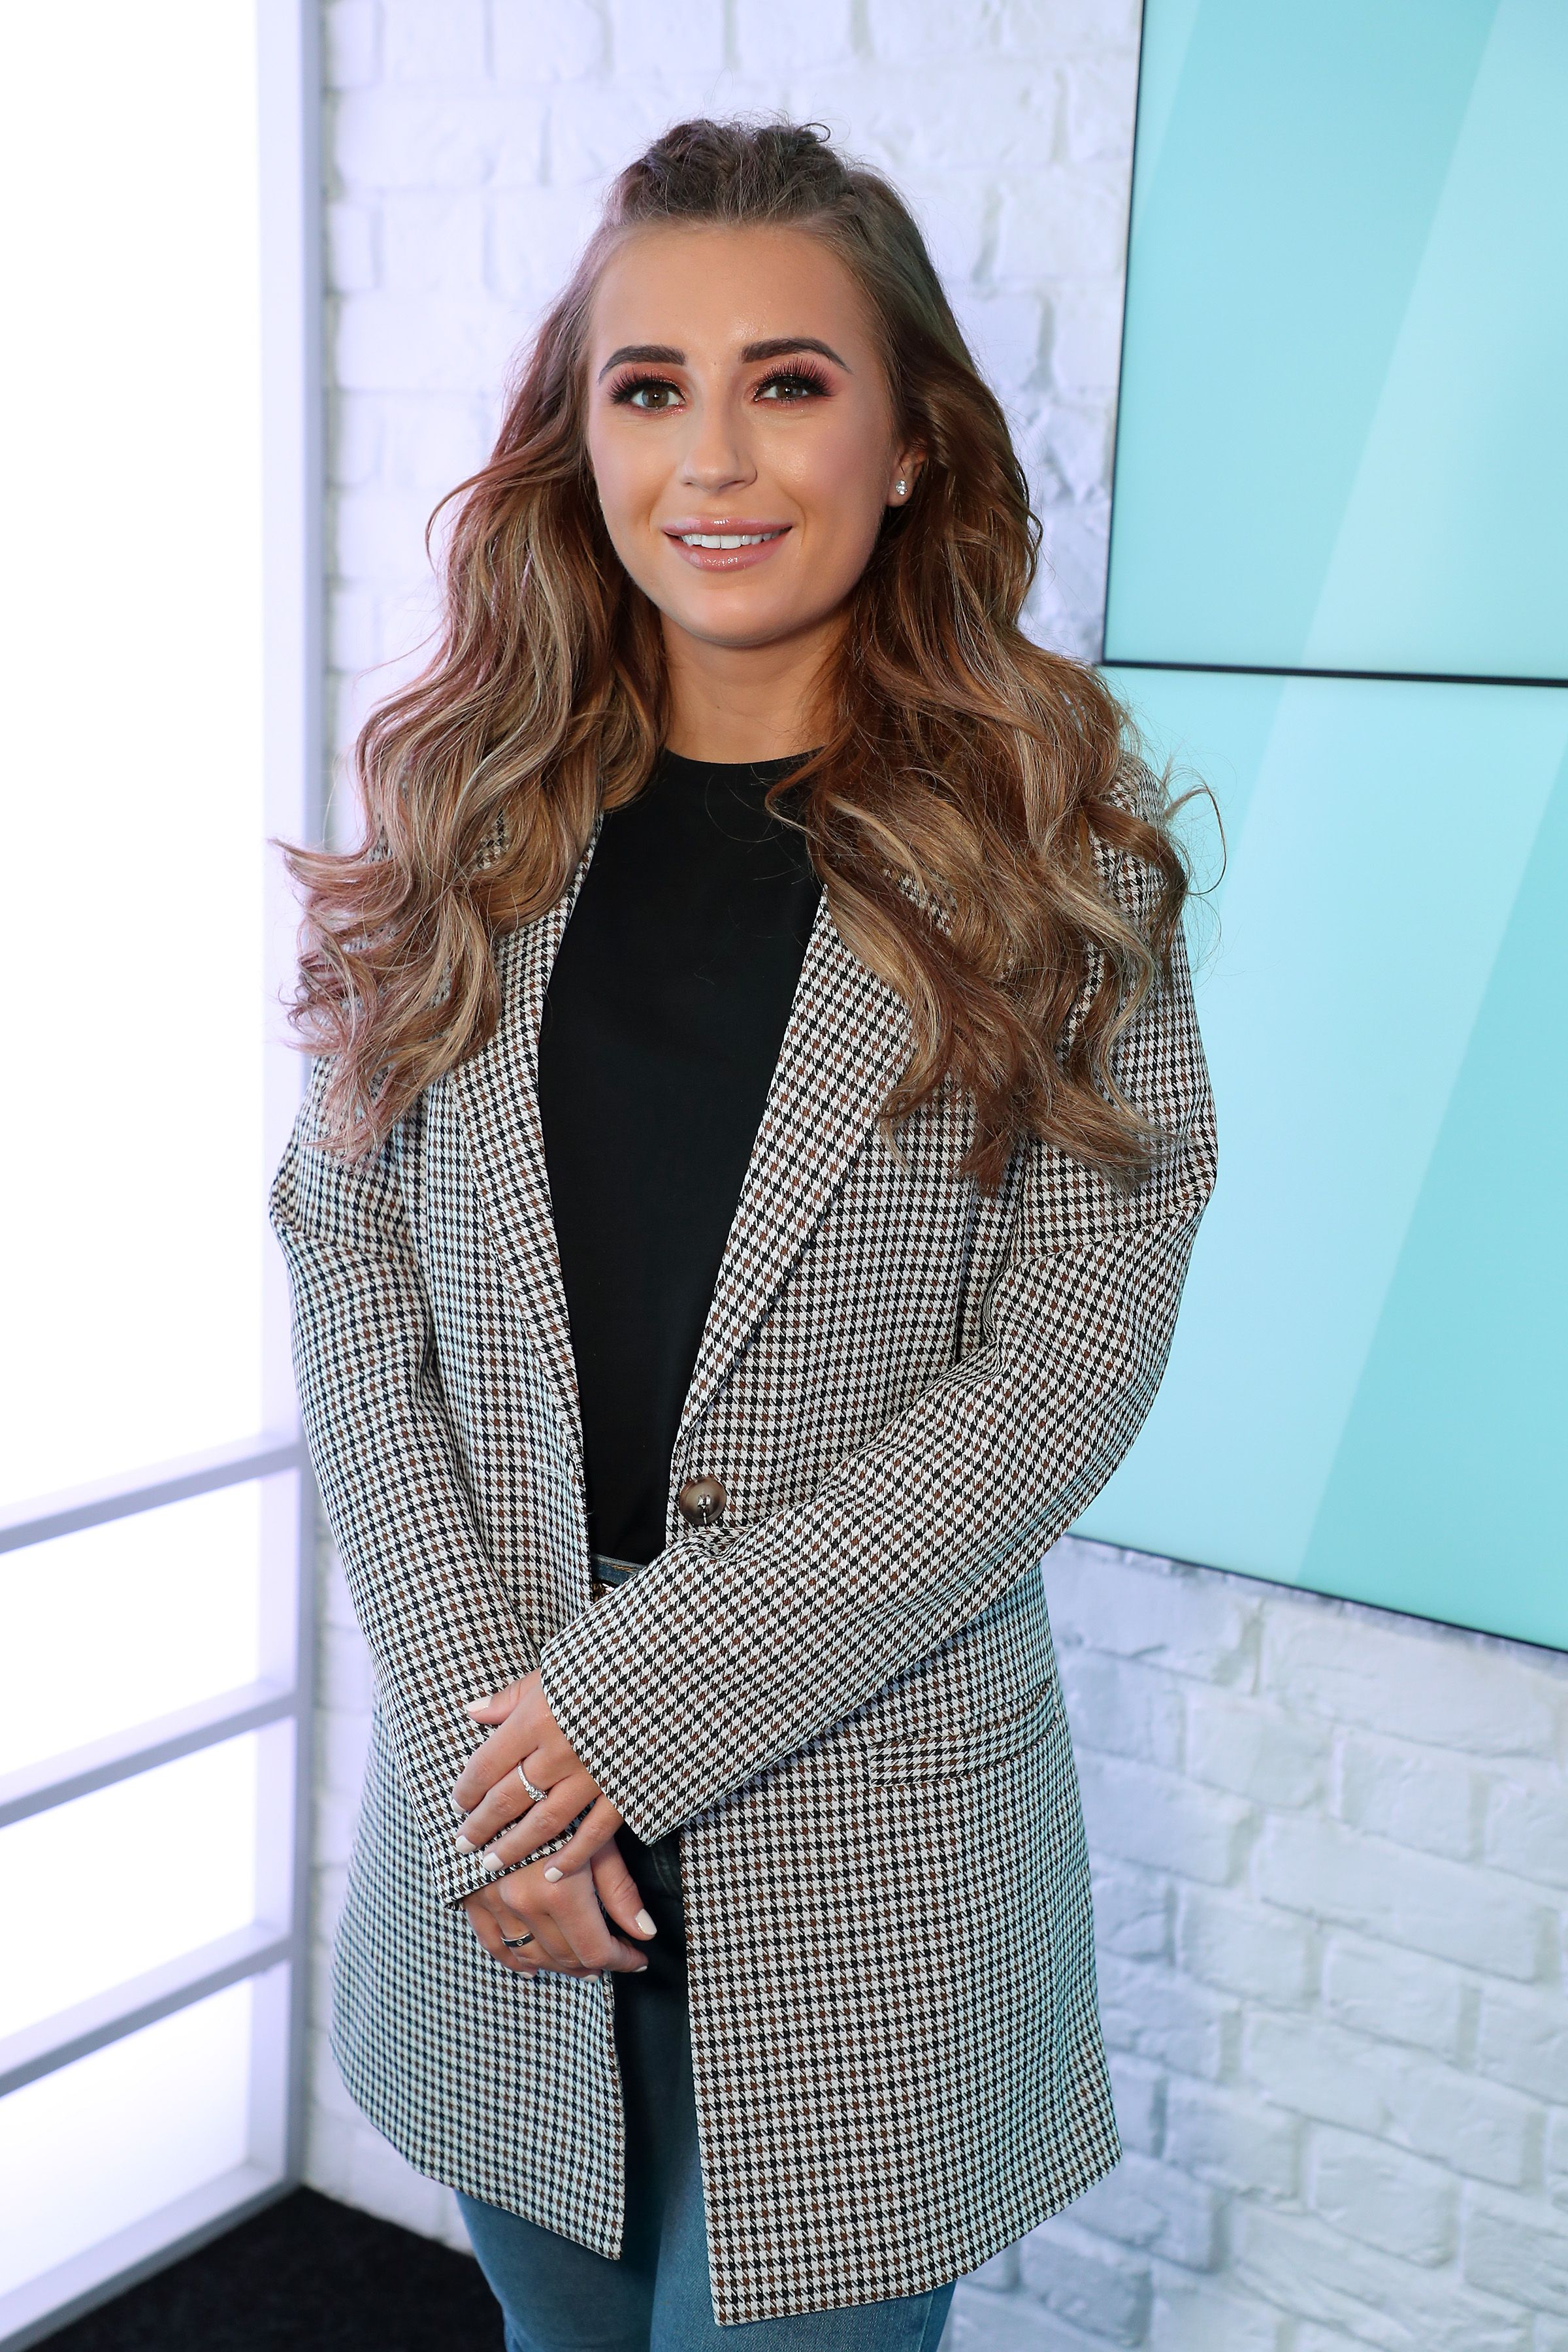 Dani Dyer opens up about having therapy to cope with Love Island fame